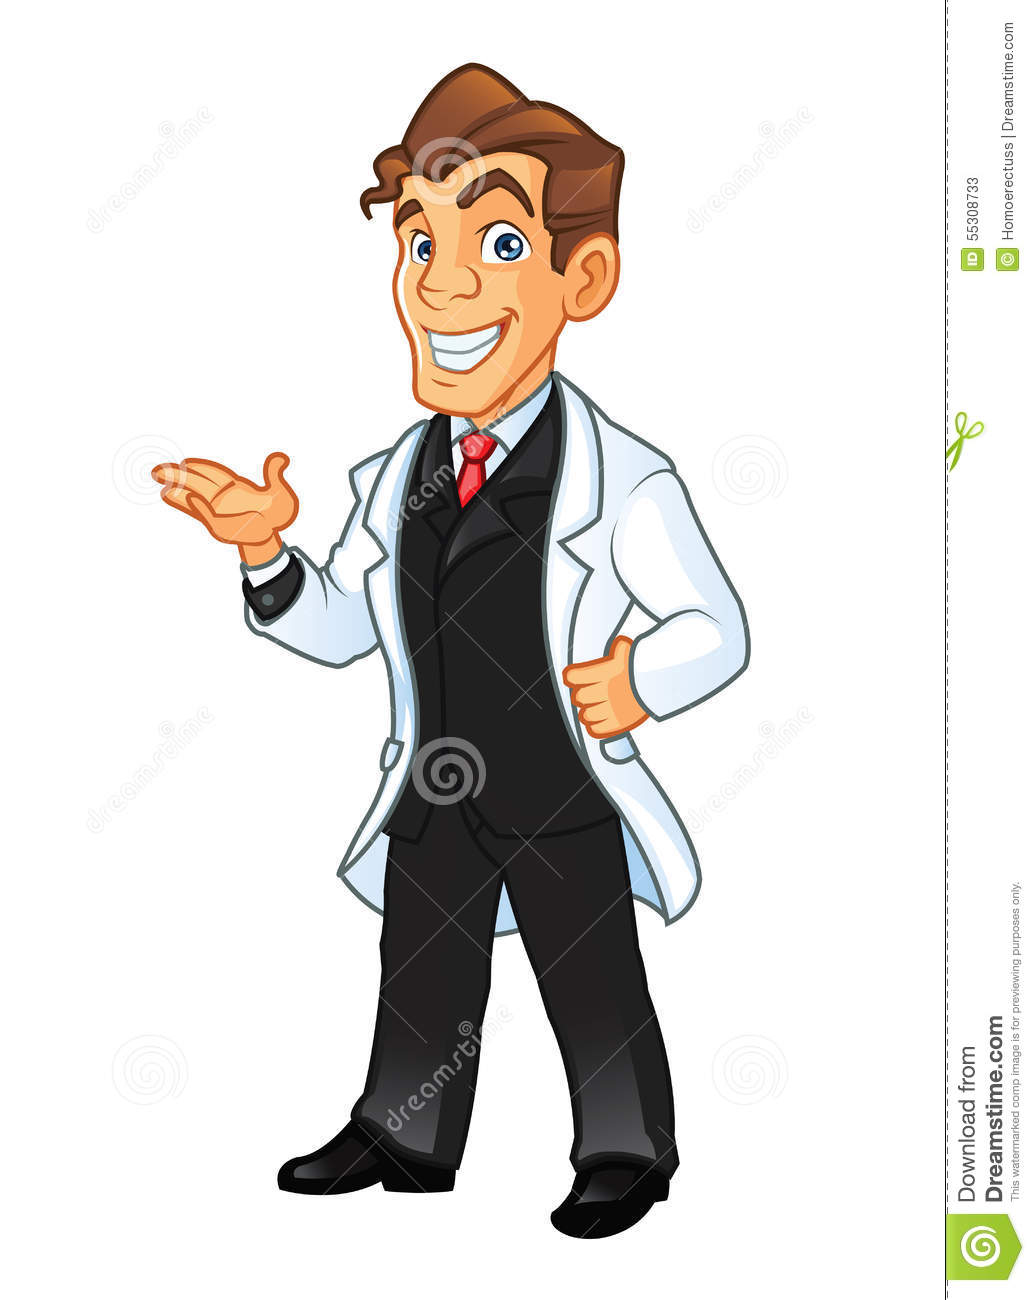 Young Scientist Stock Illustration - Image: 55308733